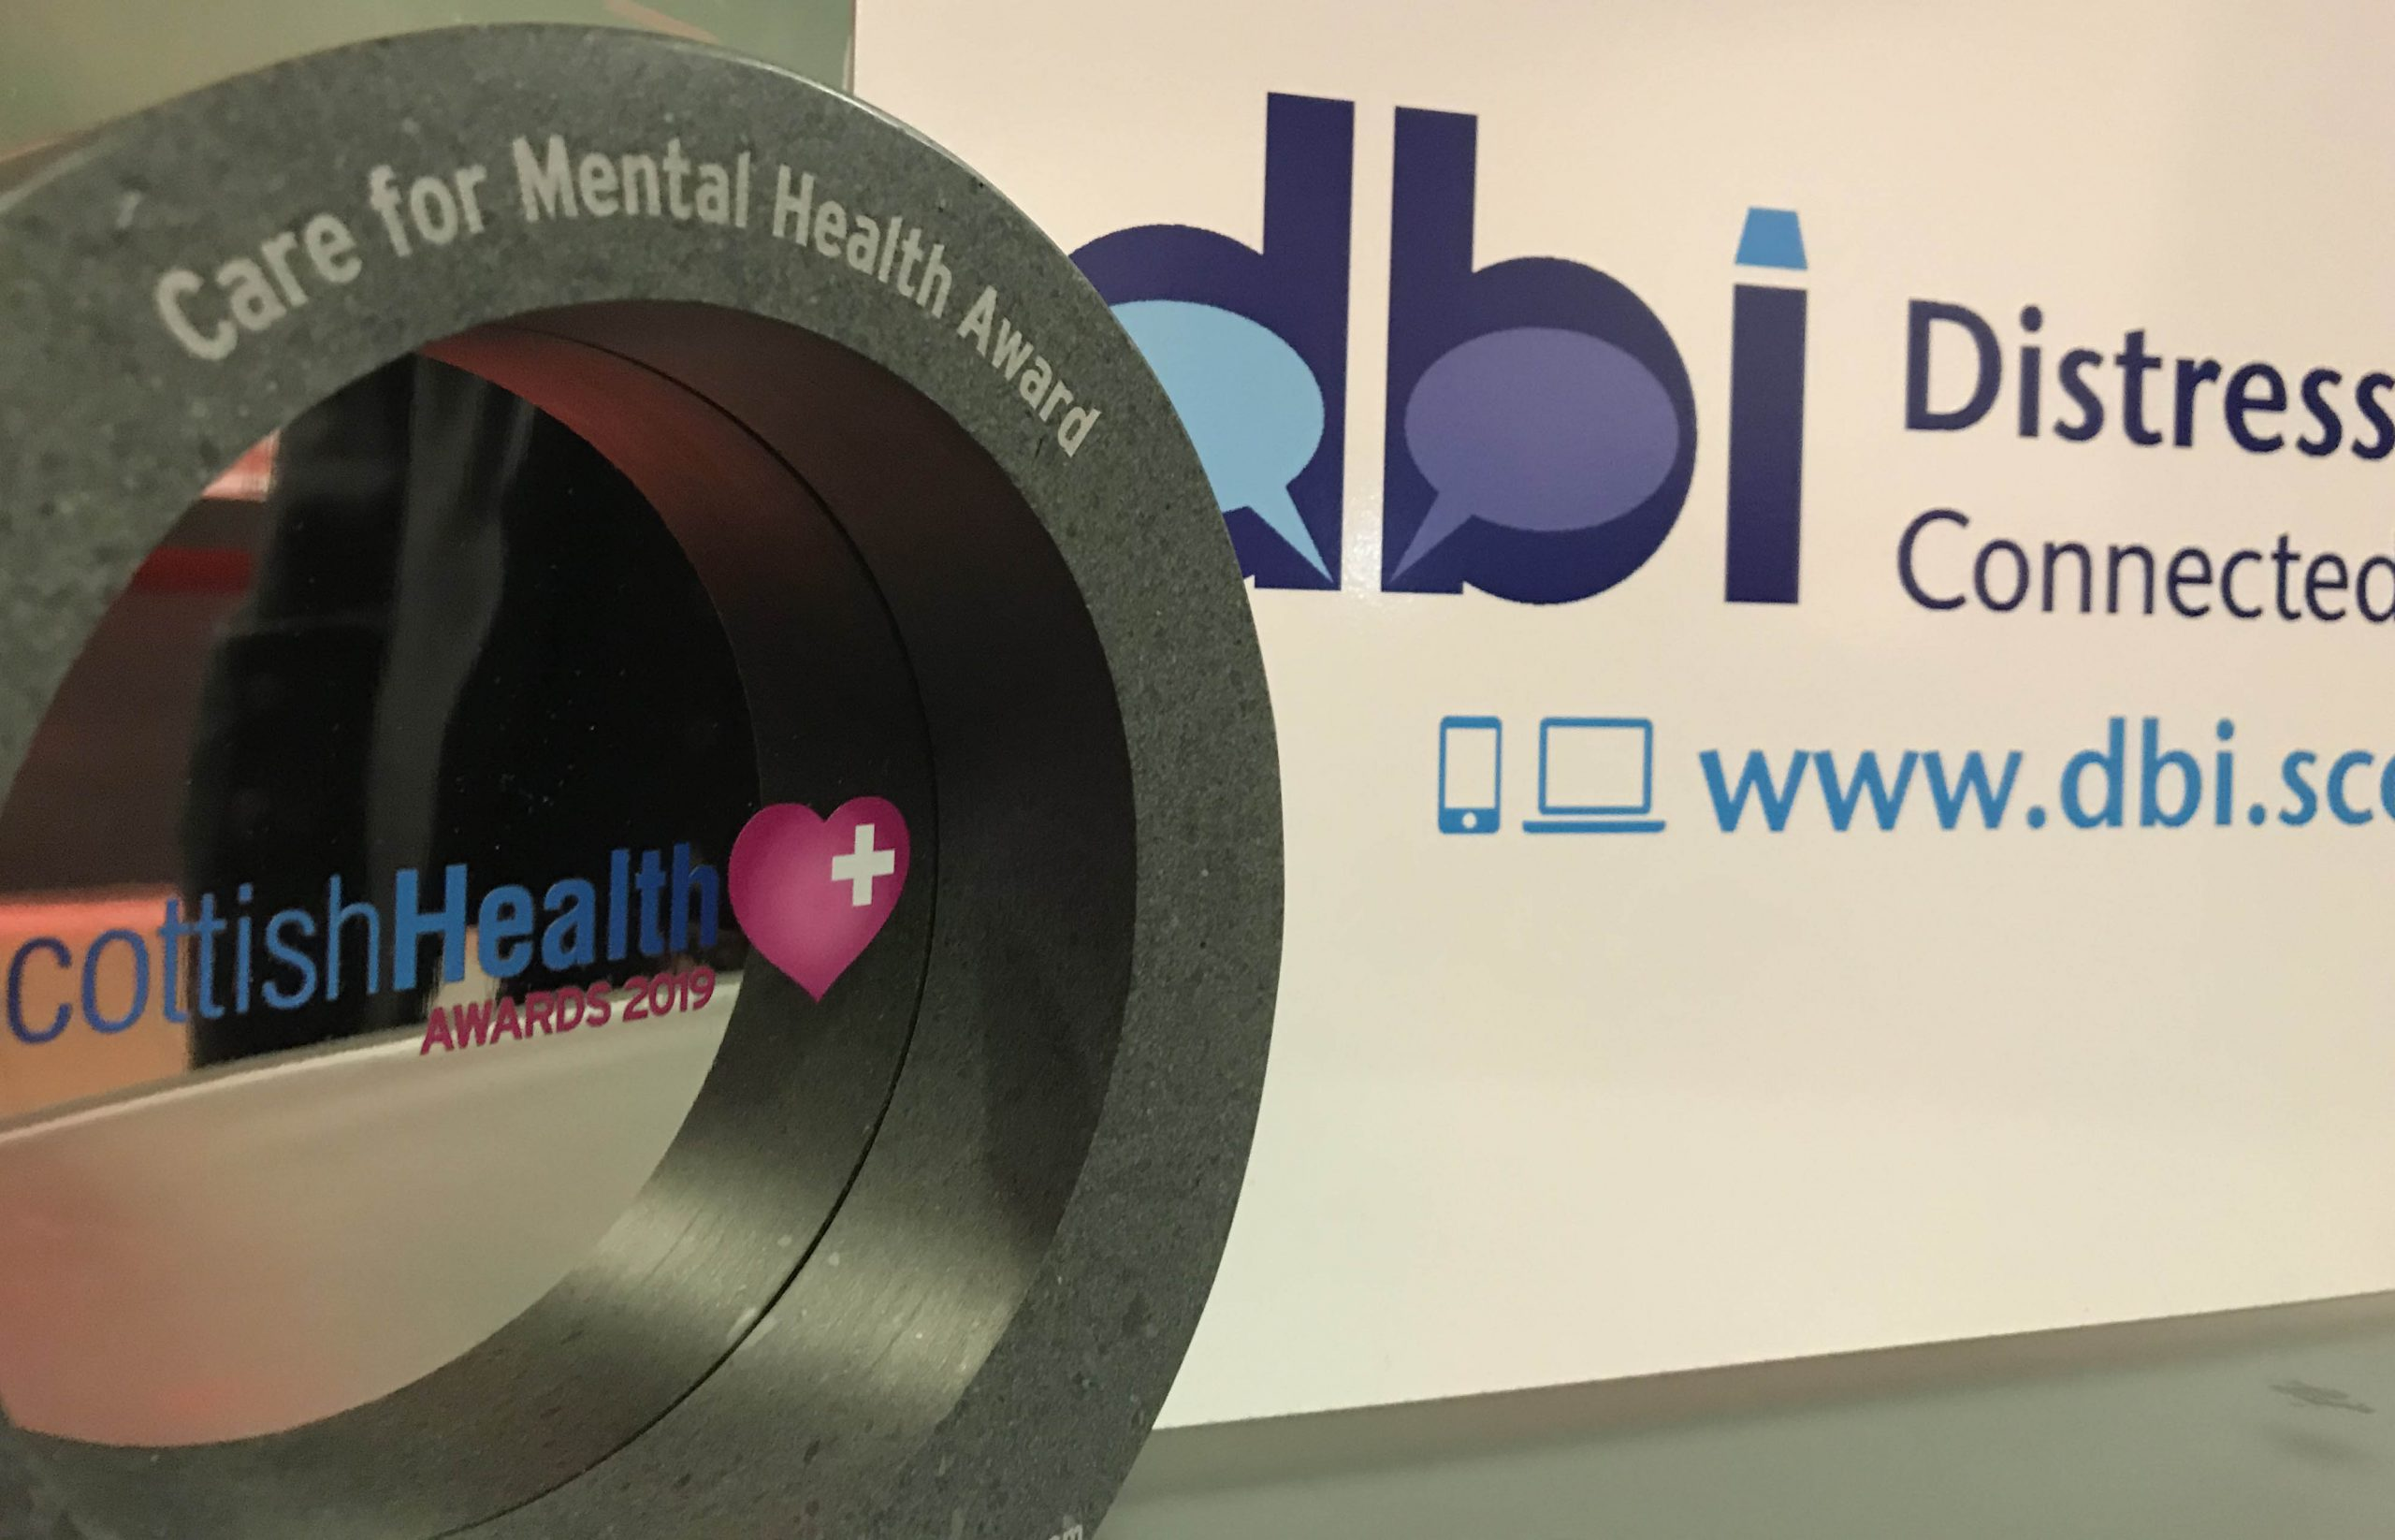 DBI wins prestigious Scottish Health Award